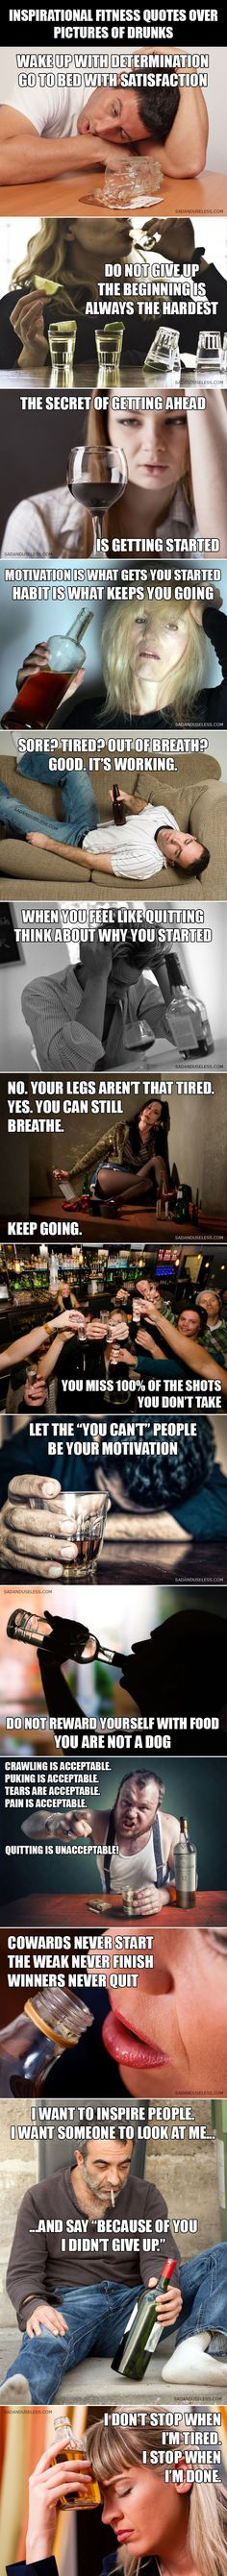 Pictures of drunks with inspirational fitness quotes